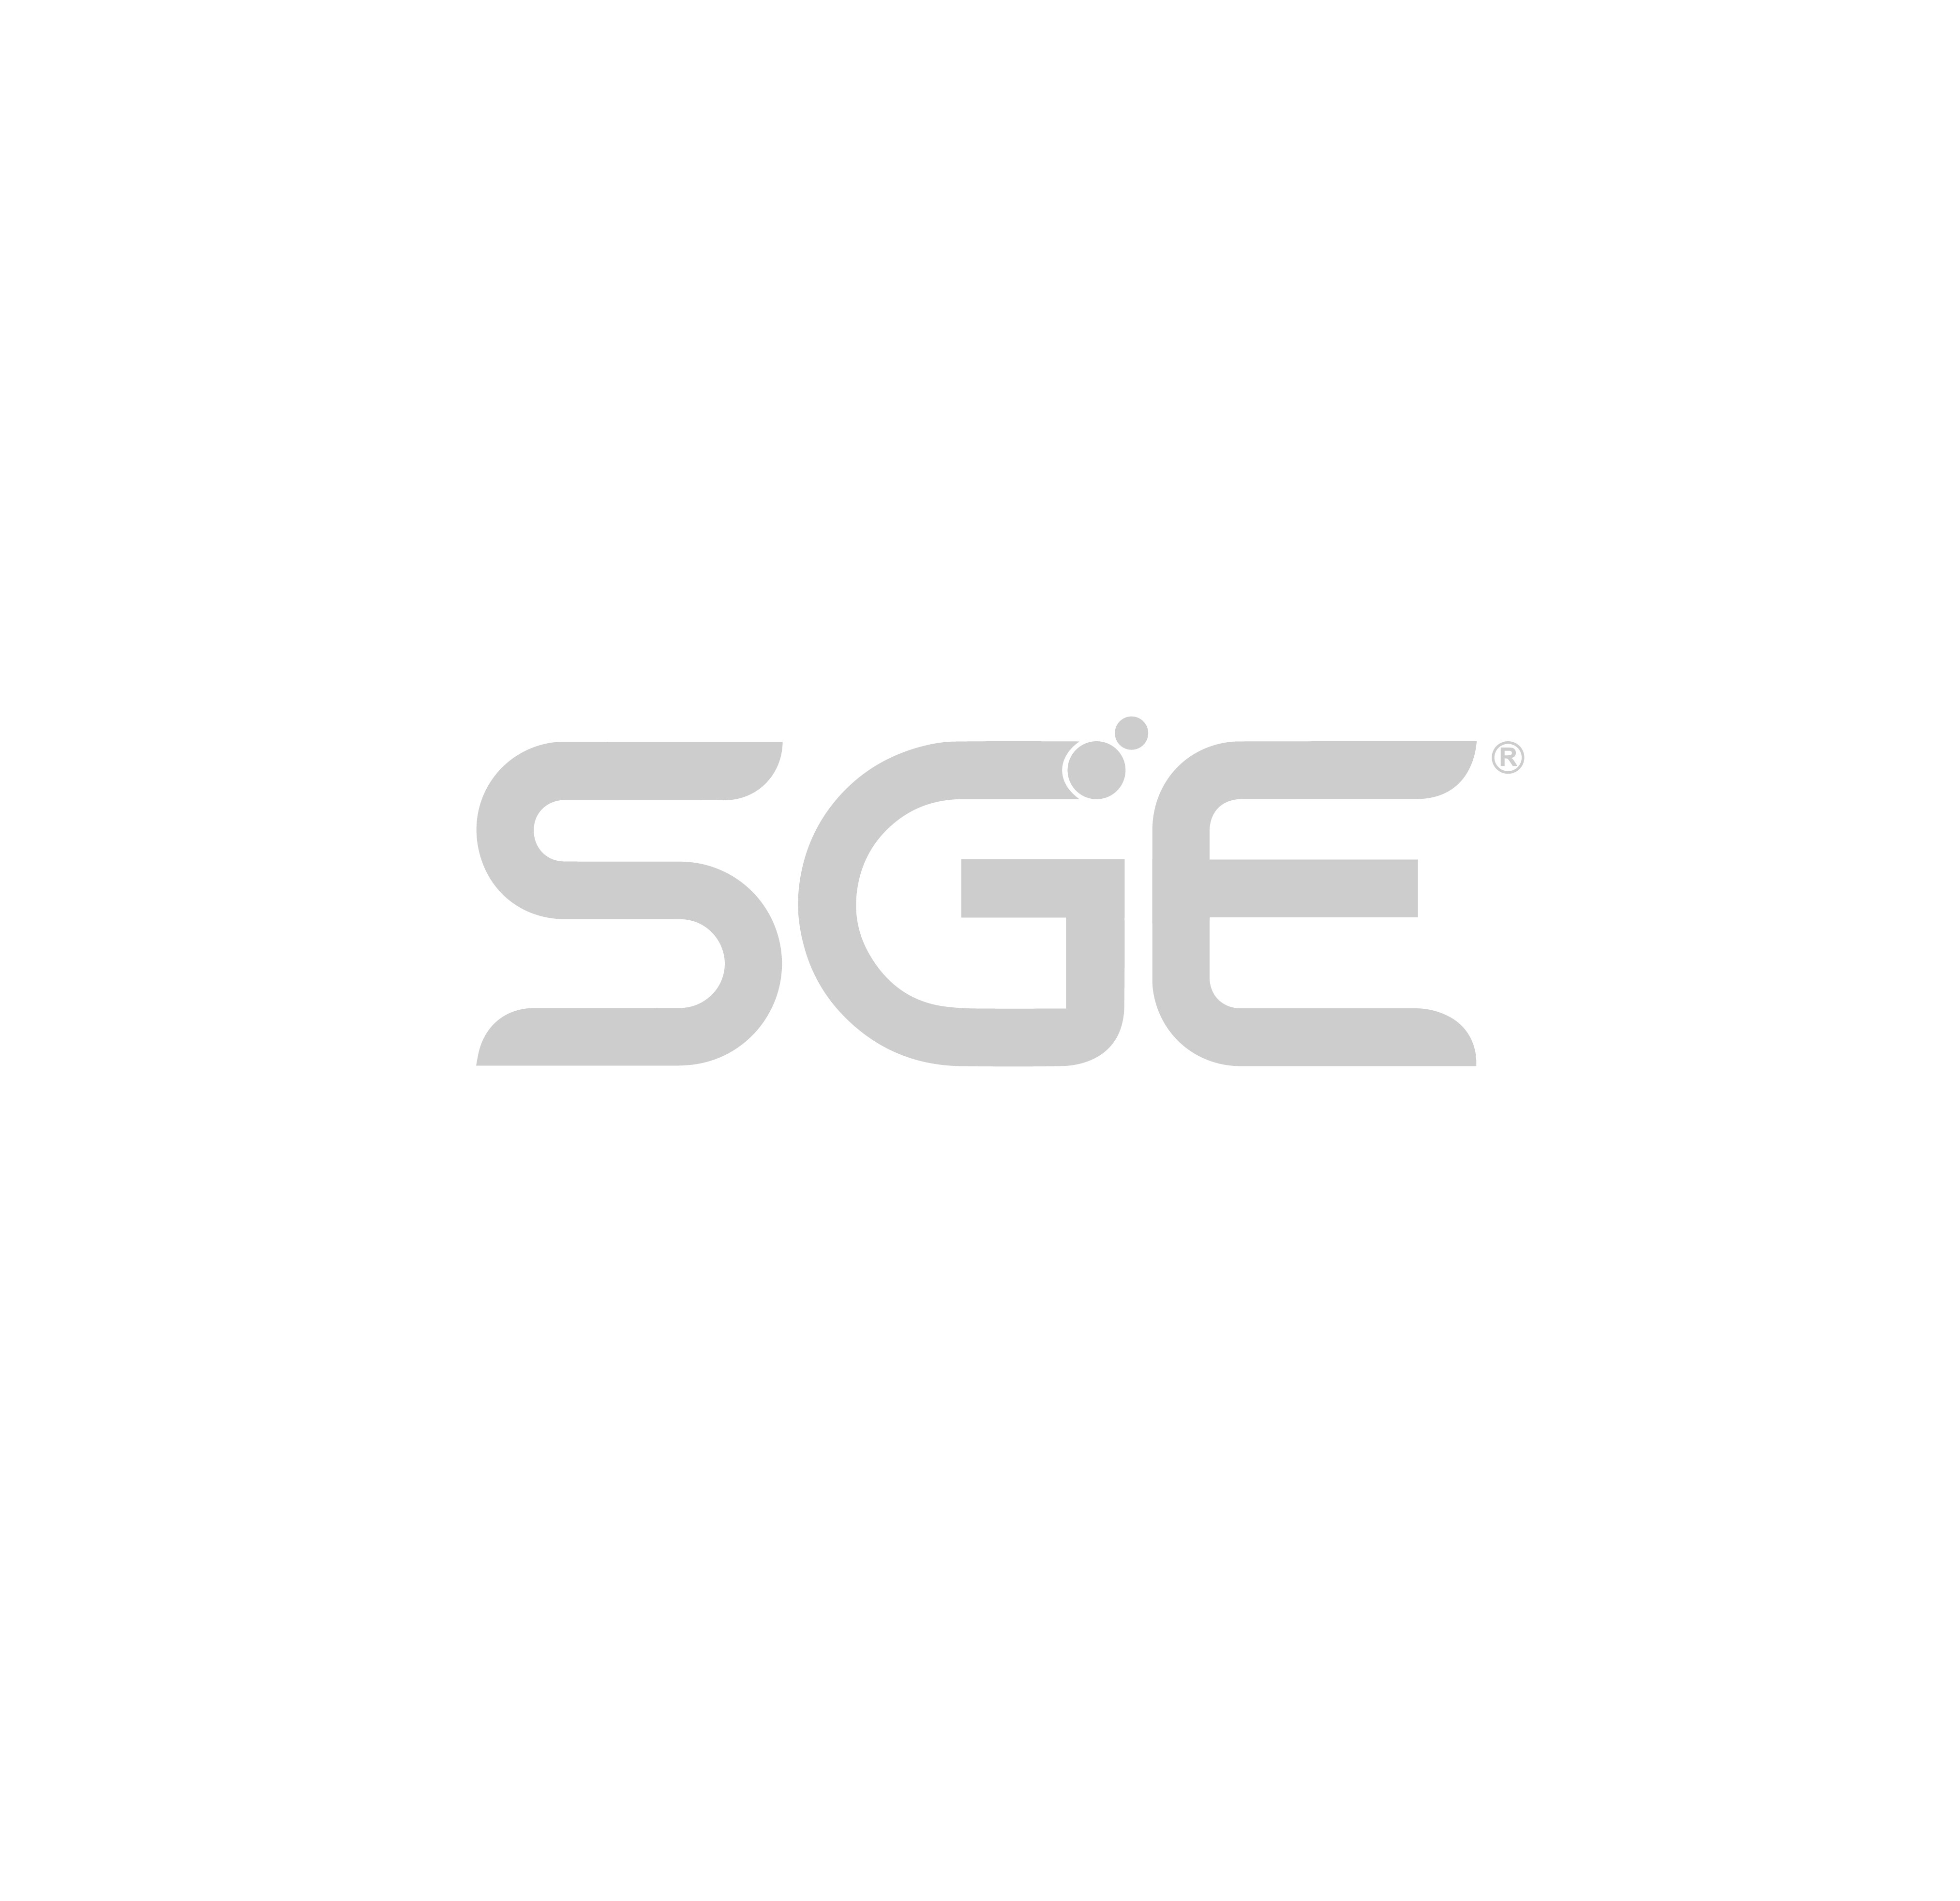 Led Smd Para Backlight De Tv Pantalla Led 1W 3V 110Lm 3.5Mm*2.8Mm